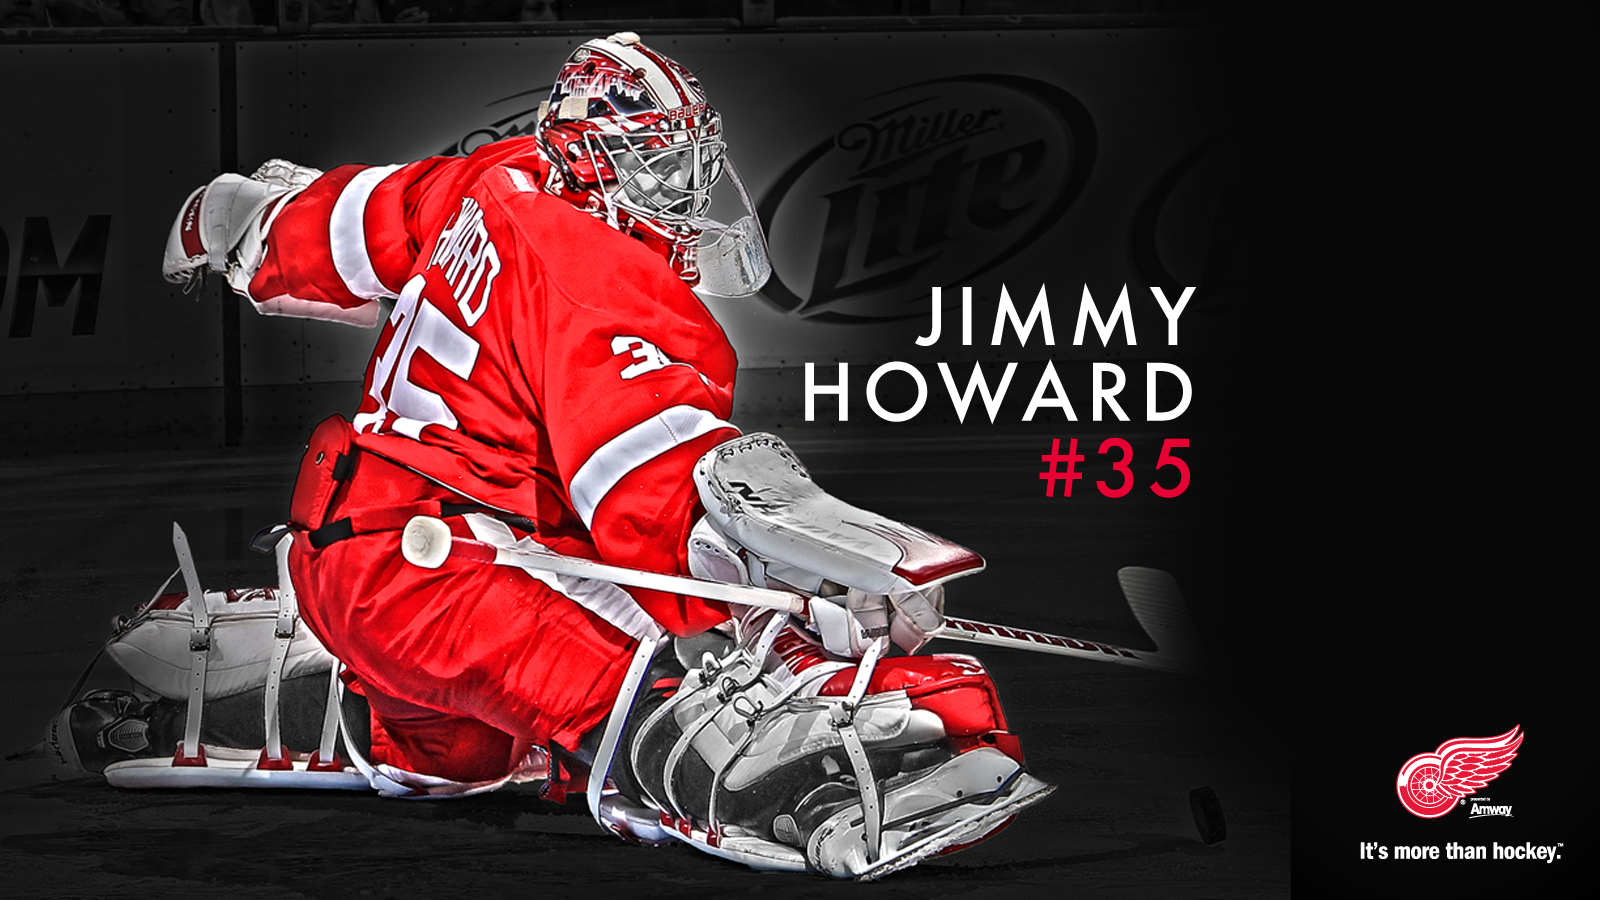 Jimmy Howard 1600x900